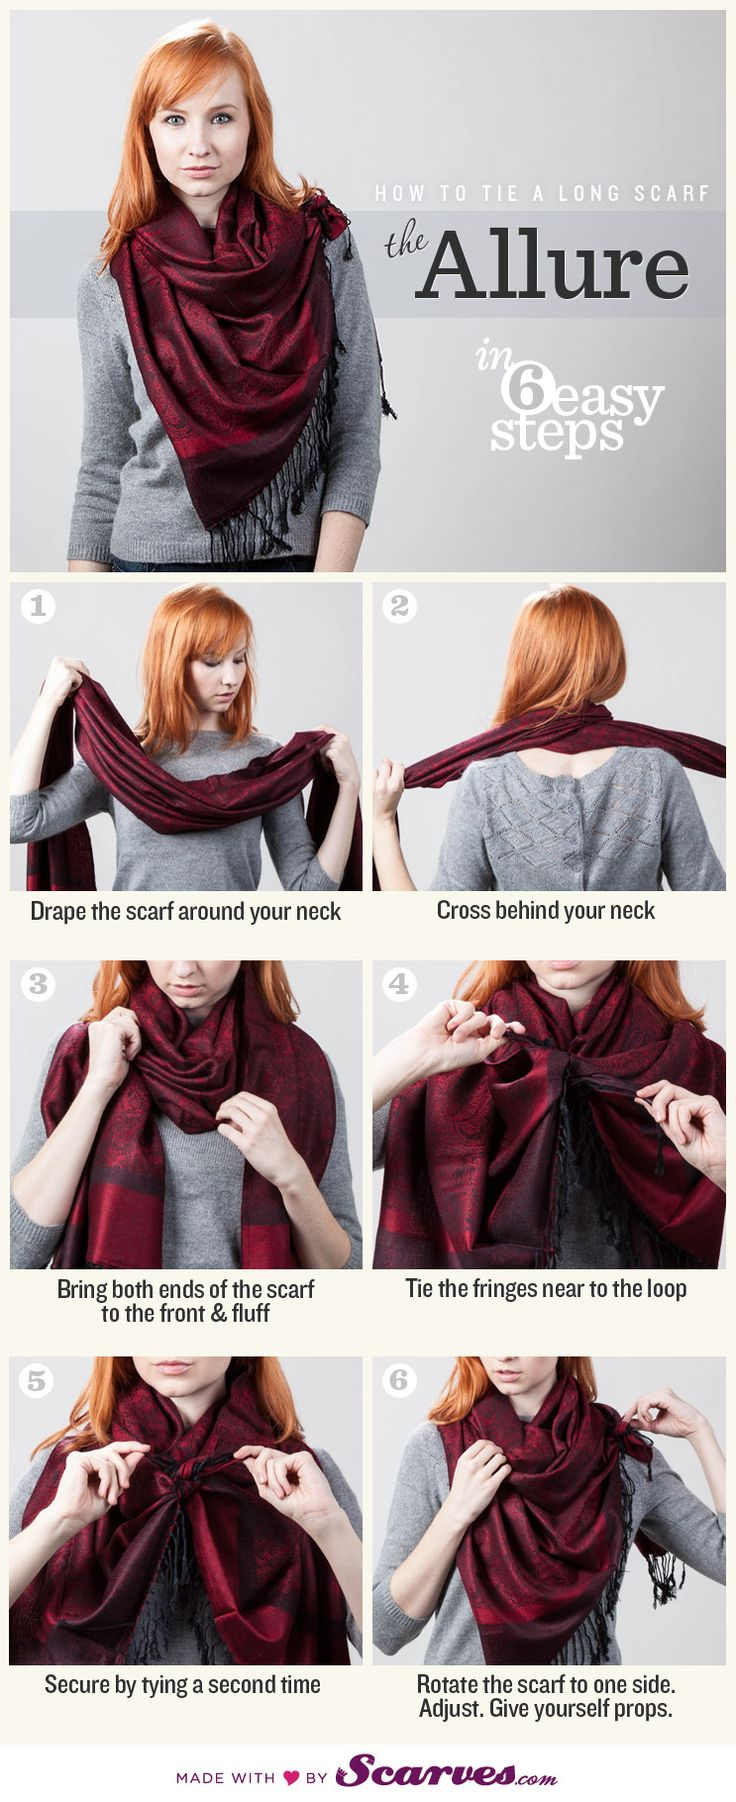 How To Tie a Scarf @ Scarves.com